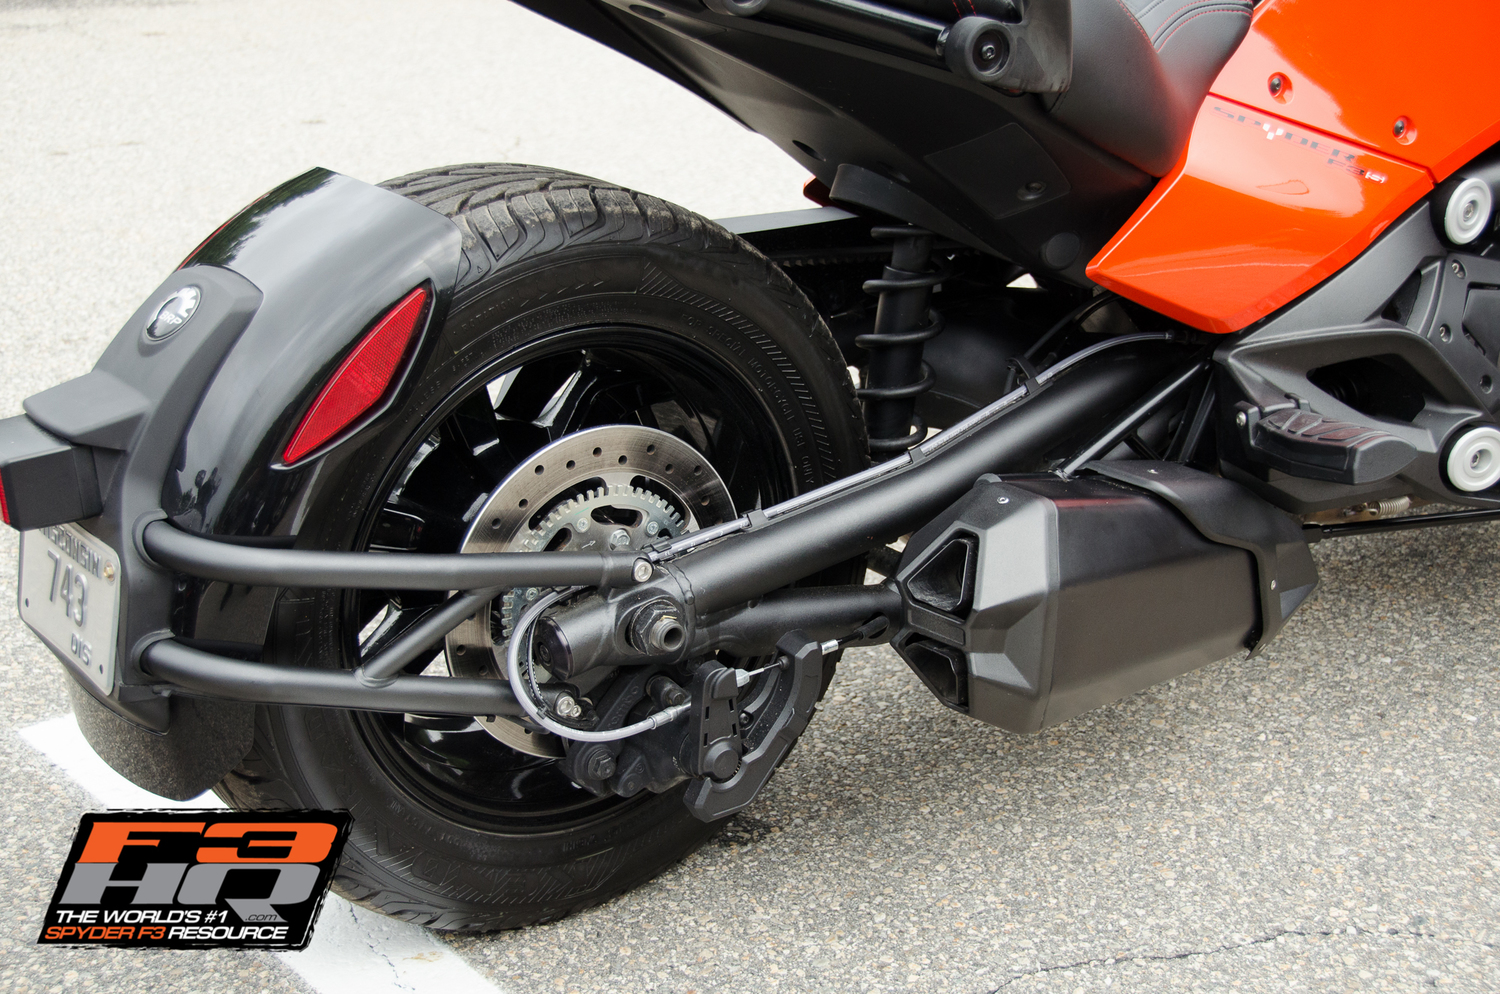 2014 Can-Am Spyder F3 - Product Launch and Ryde-39-29.jpg